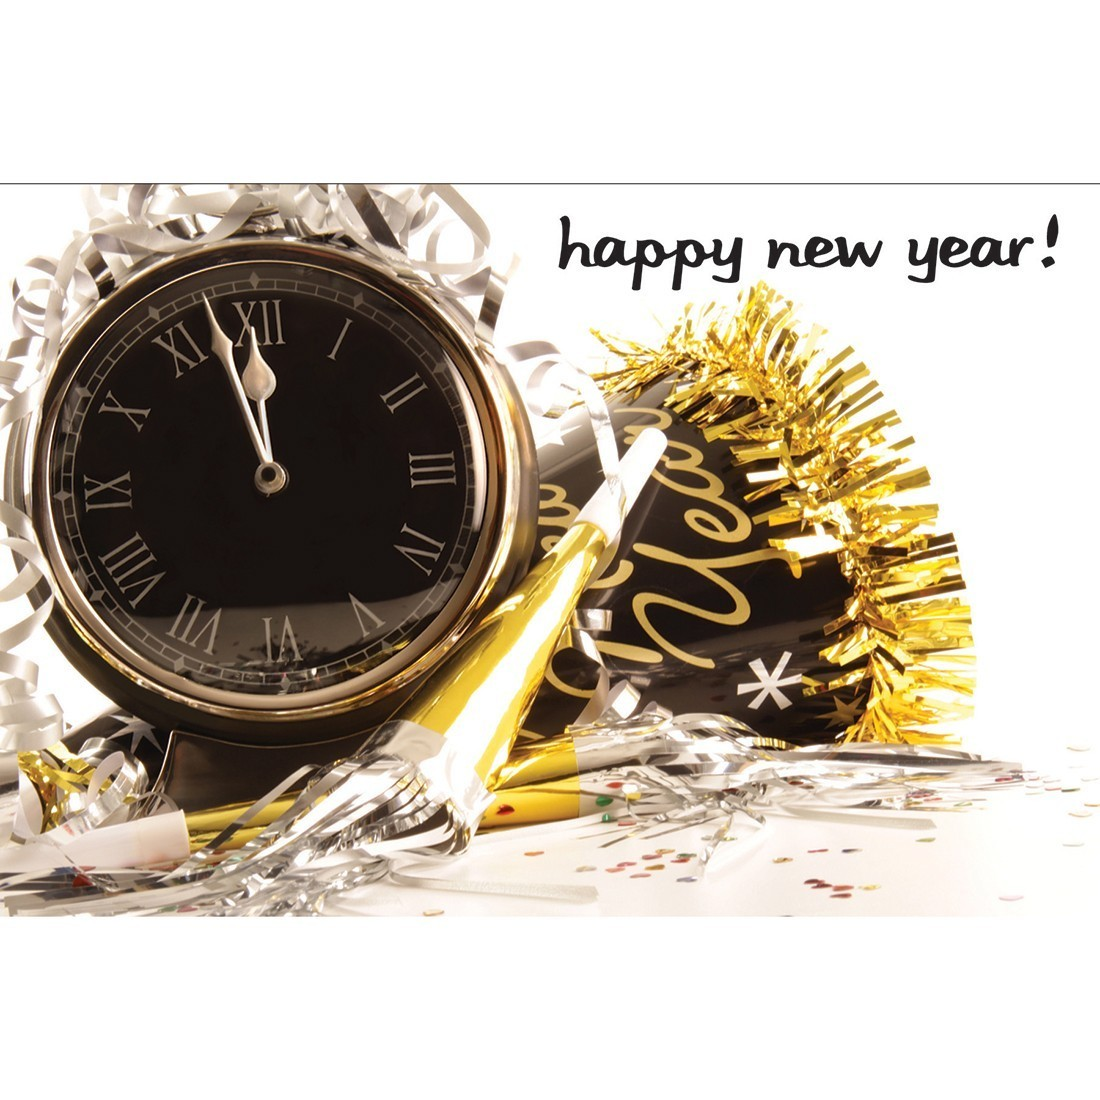 Happy New Years Clock Greeting Cards [image]